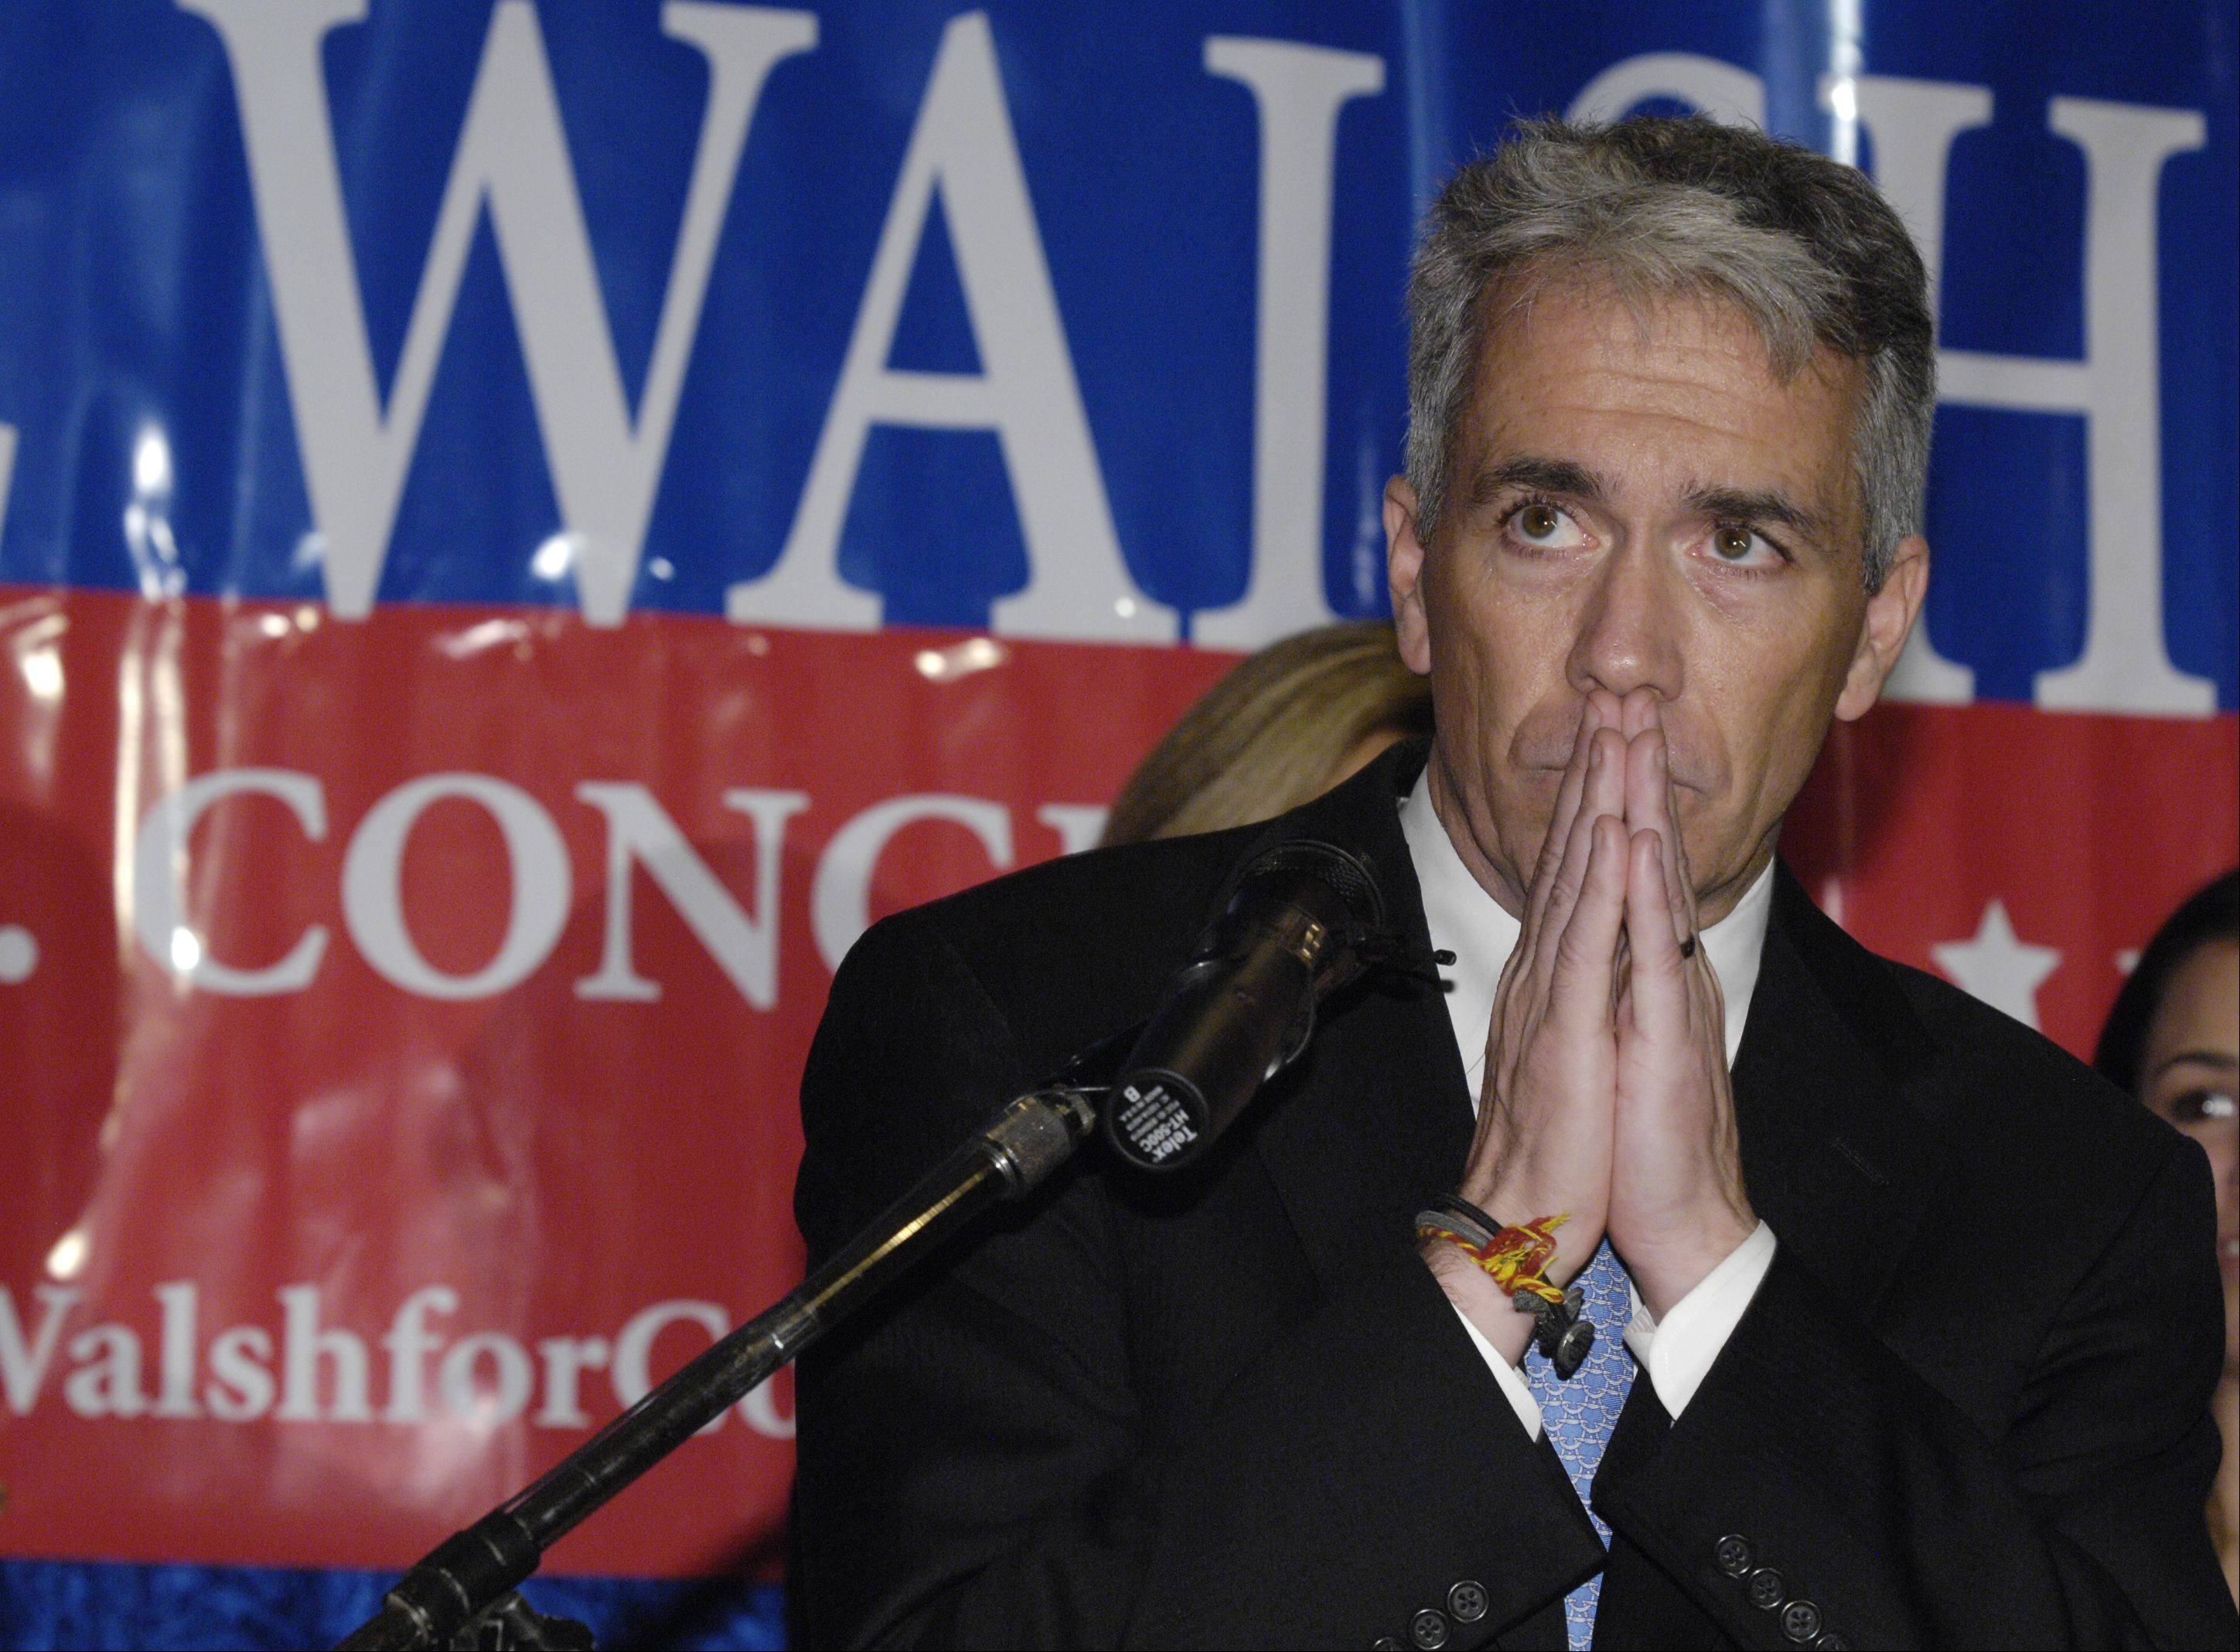 Eighth District Republican Congressman Joe Walsh speaks to supporters after conceding to Democrat Tammy Duckworth during his election night rally at the Medinah Shrine Center in Addison. In an interview Wednesday, Walsh said he's committed to helping refine the Illinois GOP's focus moving forward.